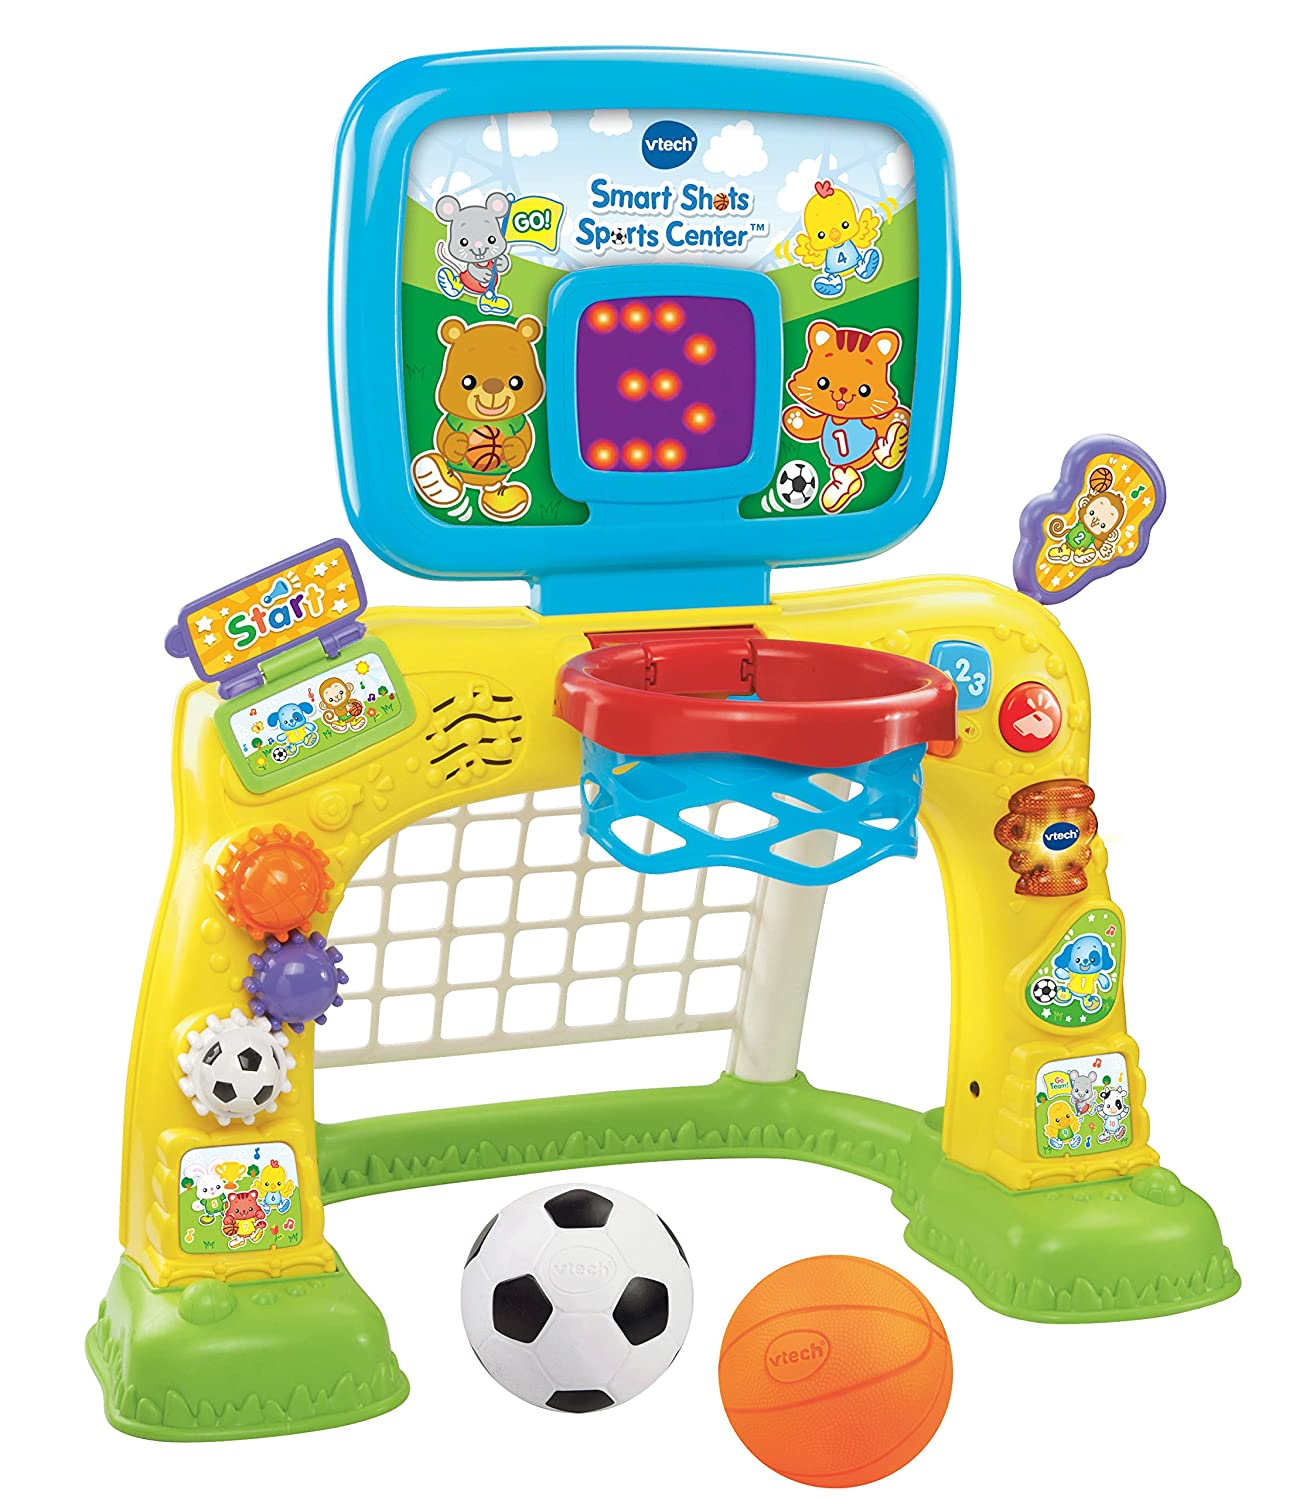 Amazon VTech Smart Shots Sports Center Jeux et jouets